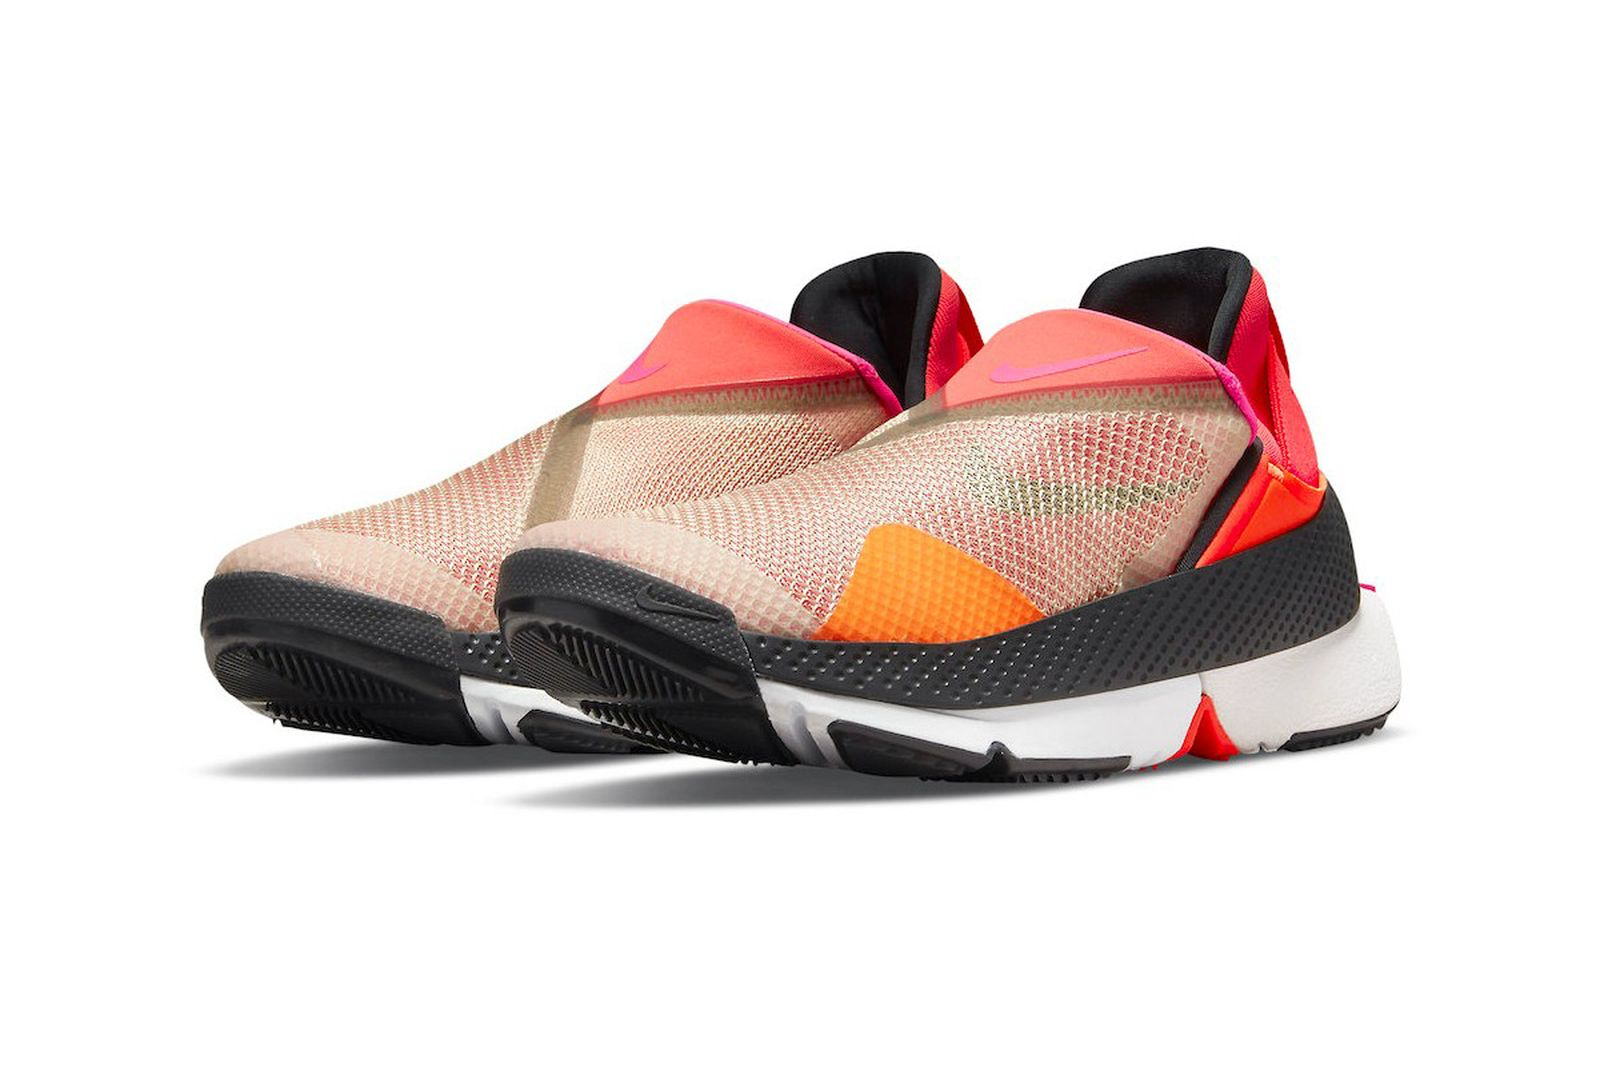 nike-go-flyease-red-black-release-date-price-03